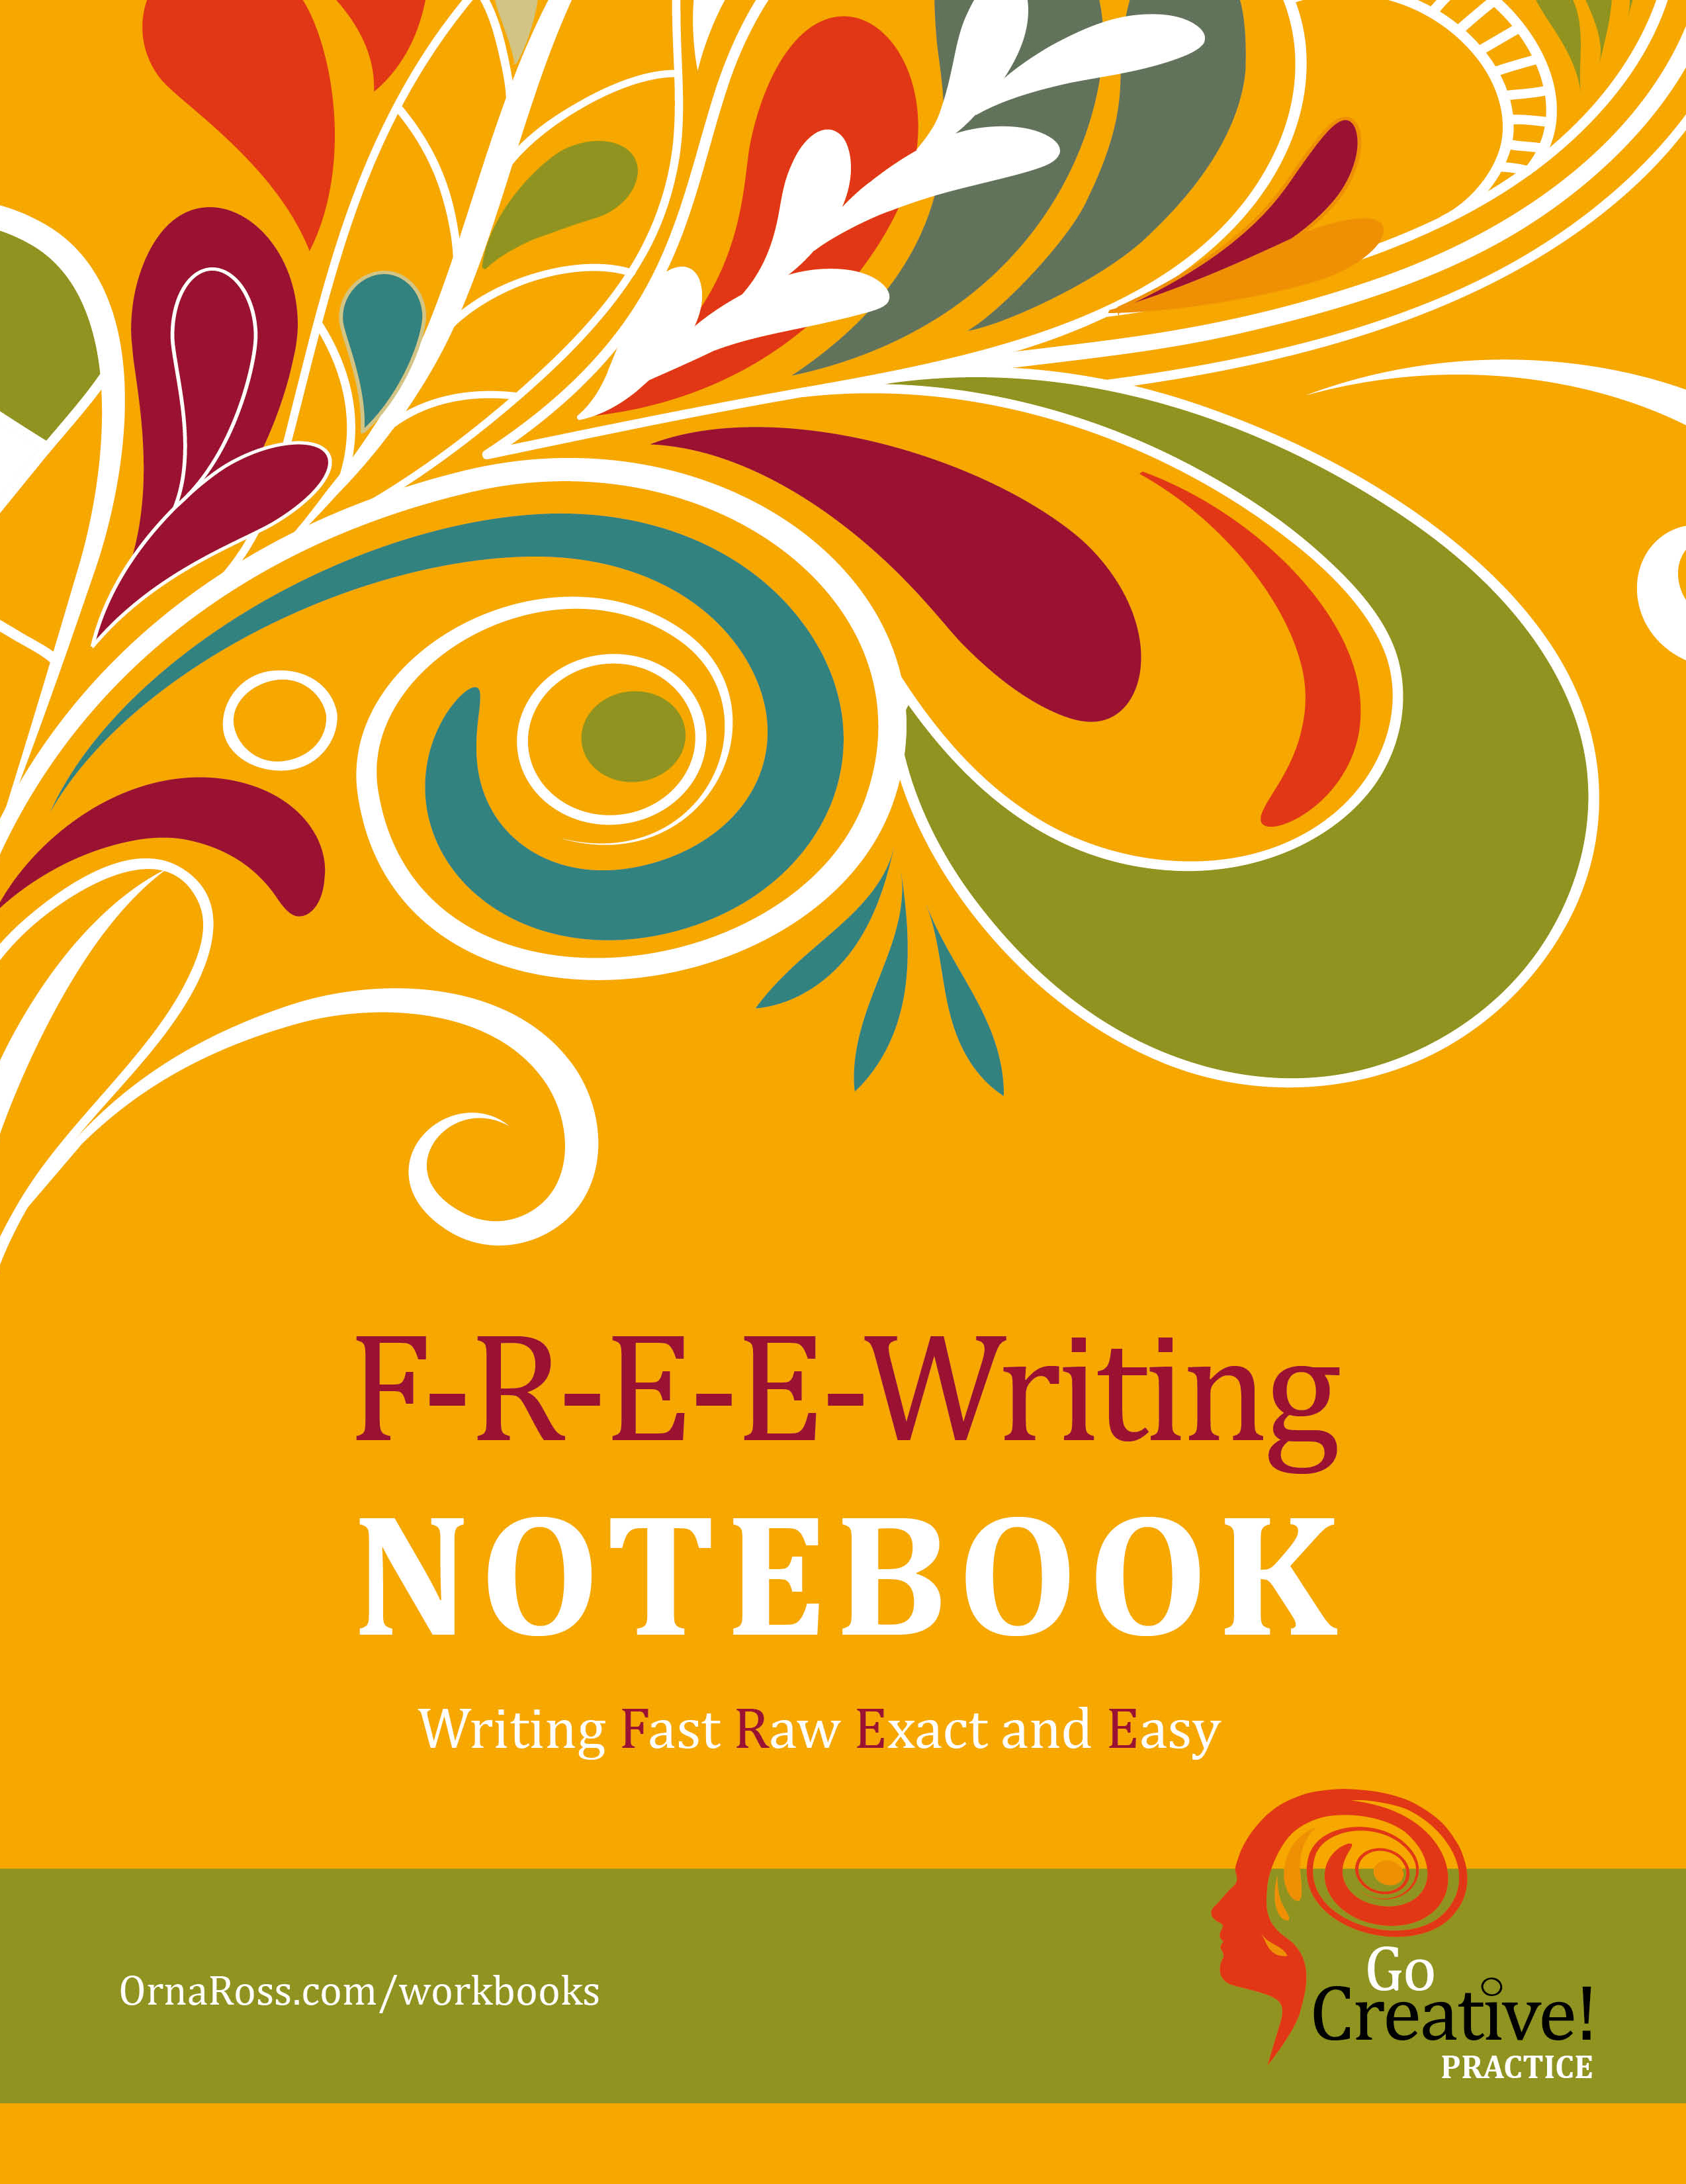 F-R-E-E-Writing Notebook: A Go Creative! Tool